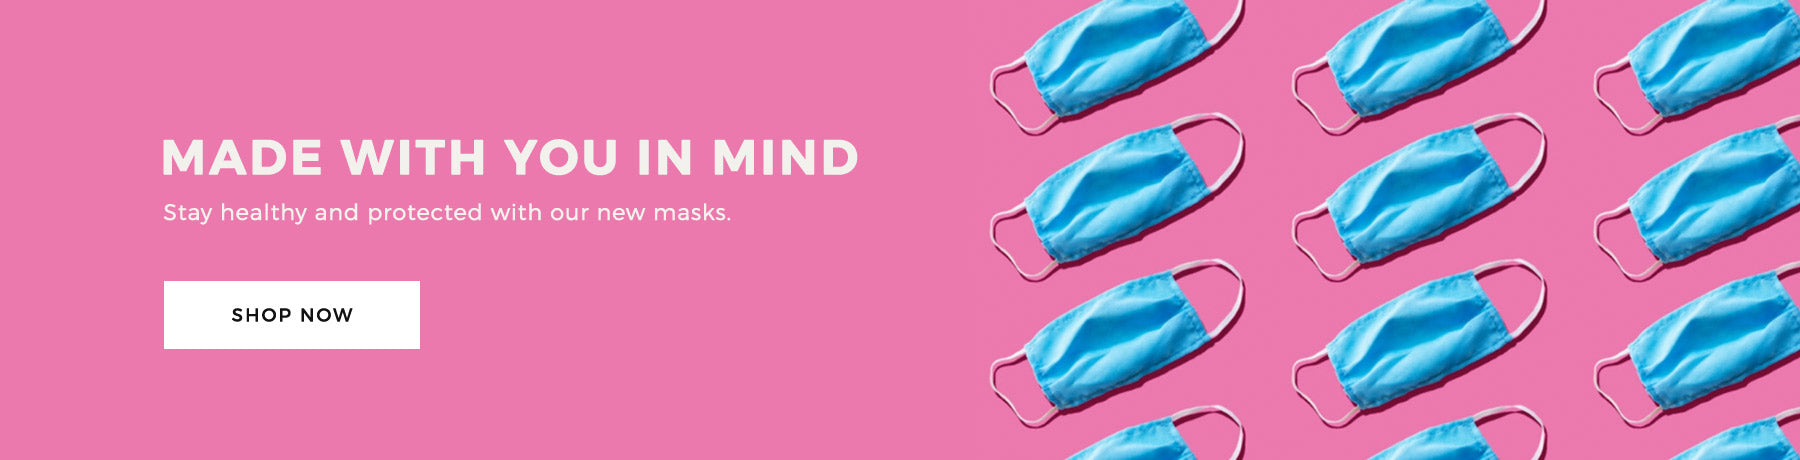 COMING SOON! Made with you in Mind Stay healthy and protected with our new masks.